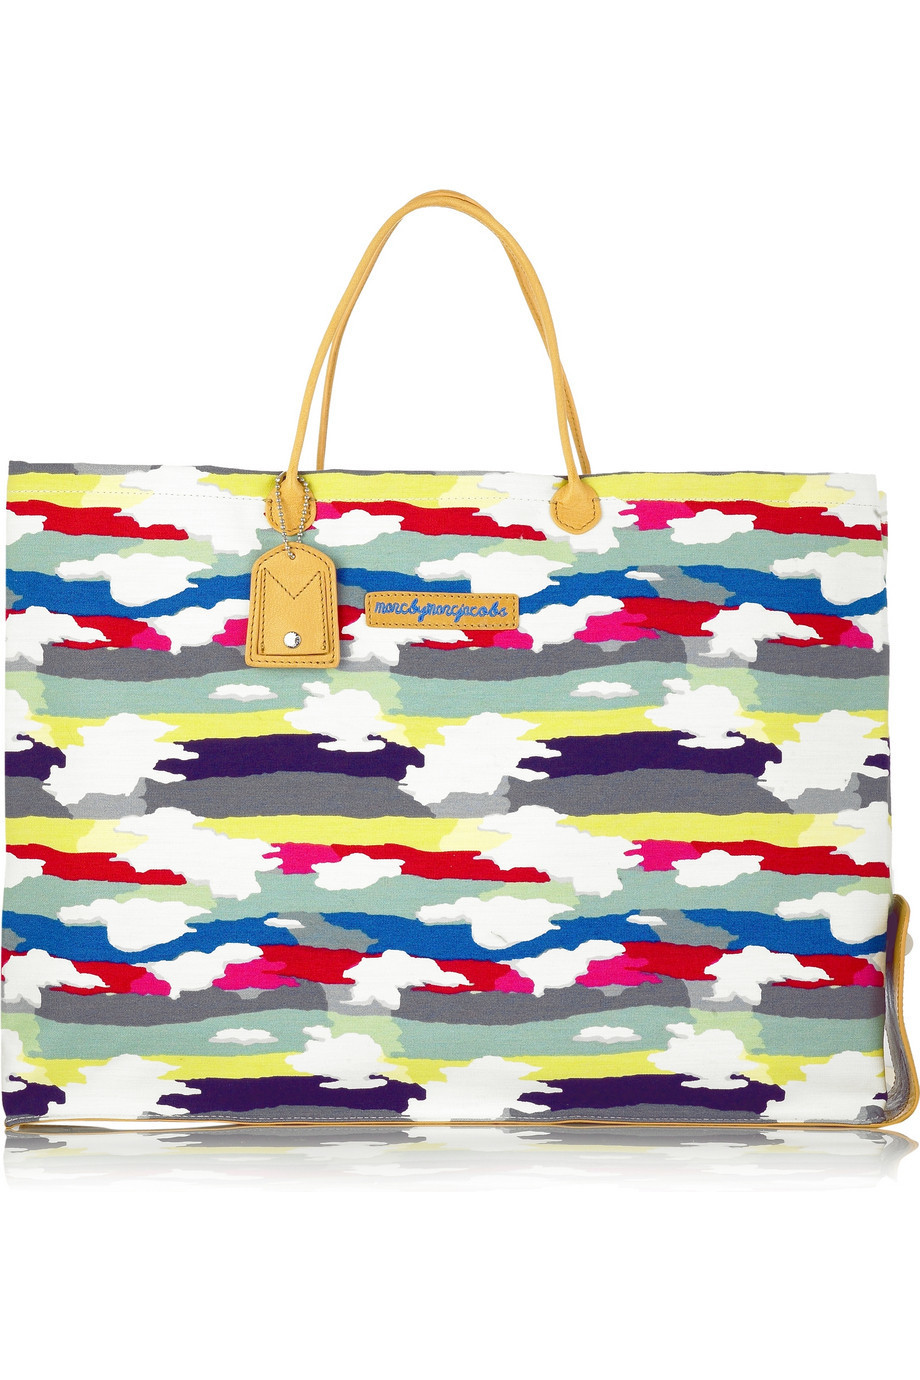 Marc by Marc Jacobs Big Tote print bag | NET-A-PORTER.COM from net-a-porter.com